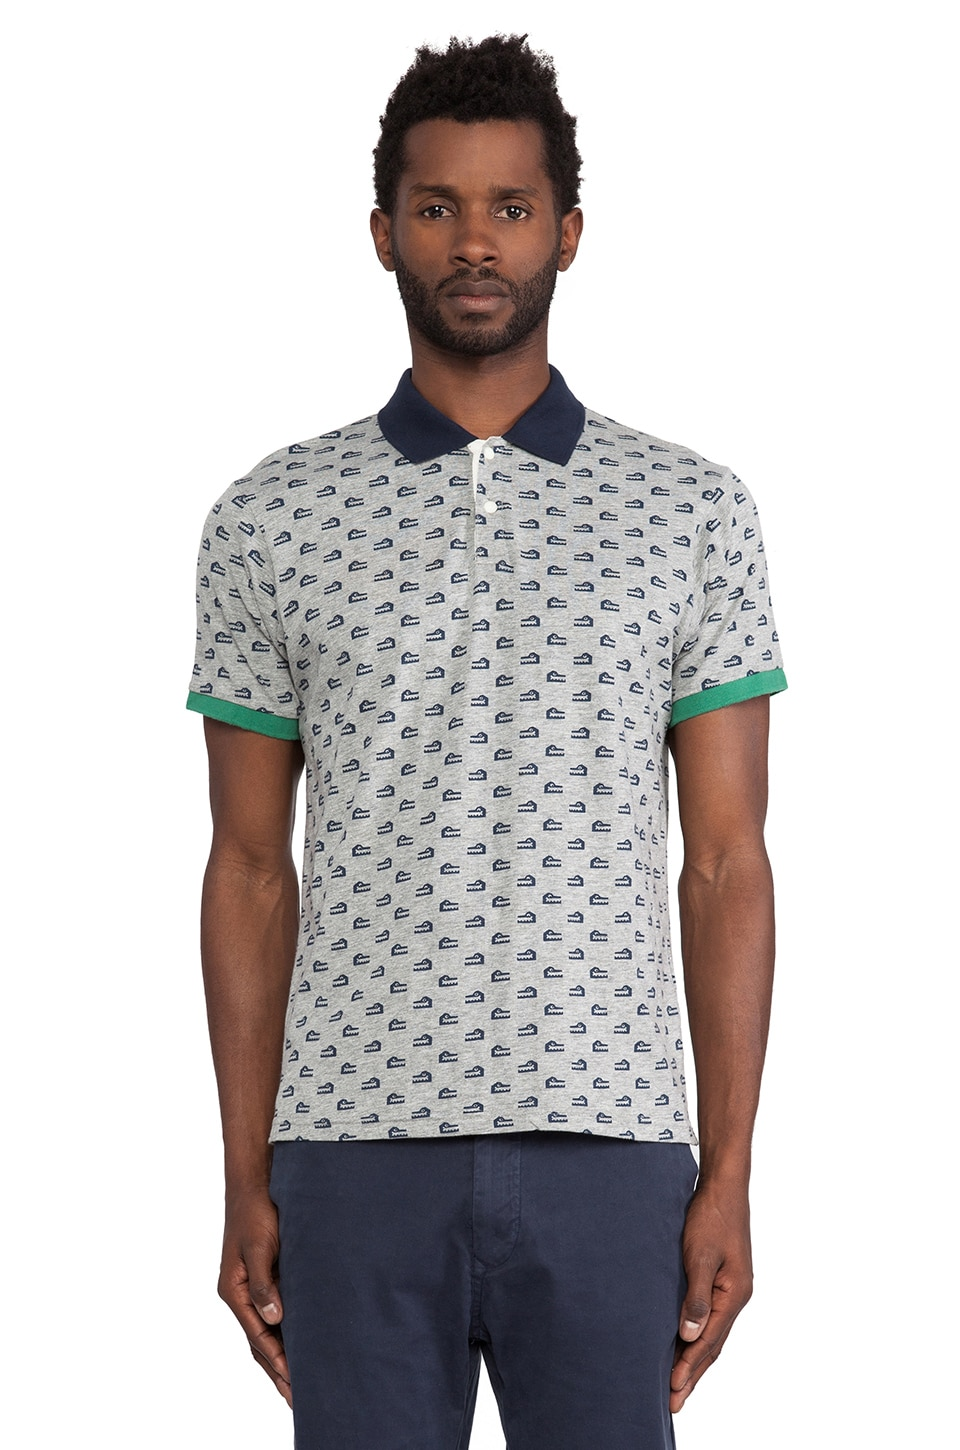 Burkman Bros. Printed Polo in Grey & Croc